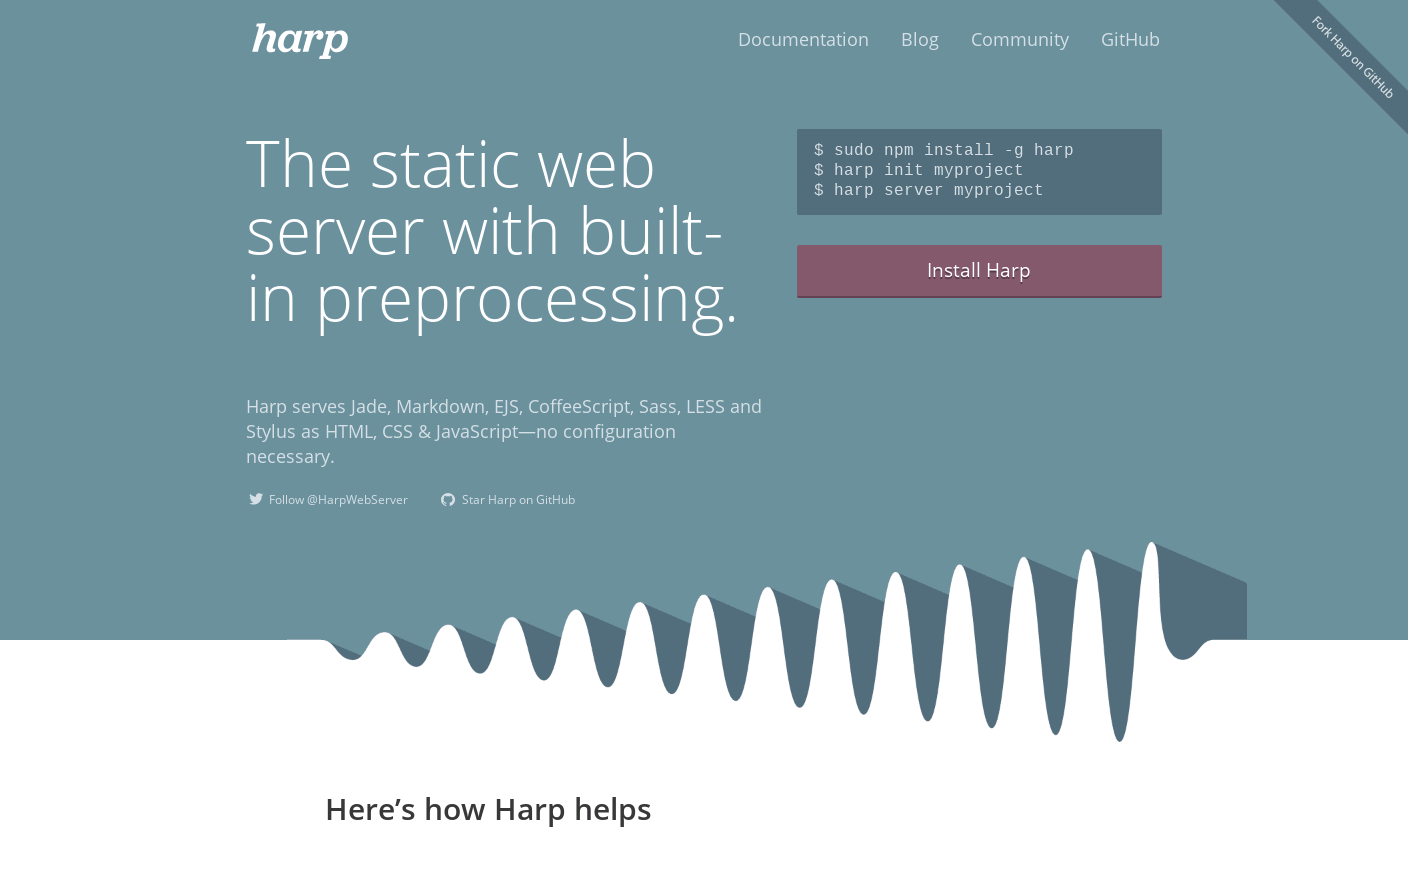 Harp, the static web server with built-in preprocessing